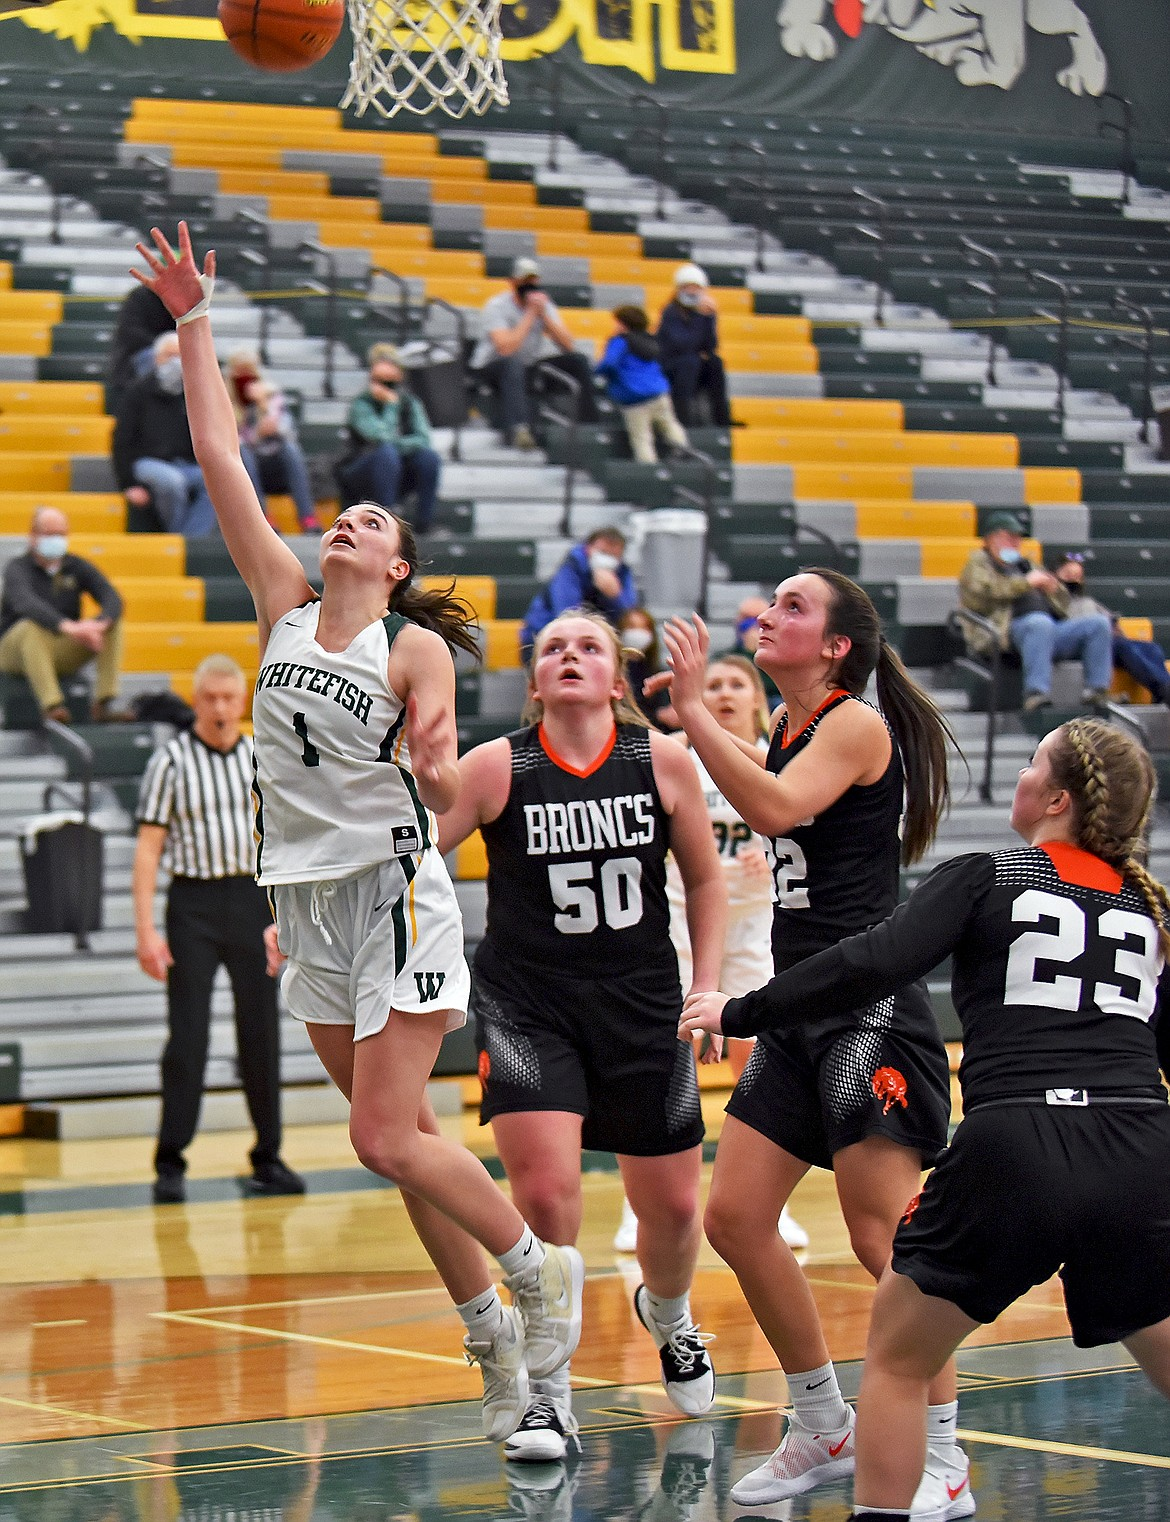 Lady Bulldog Jadi Walburn gets around Frenchtown's defense to score a layup during a game at Whitefish on Thursday evening. (Whitney England/Whitefish Pilot)